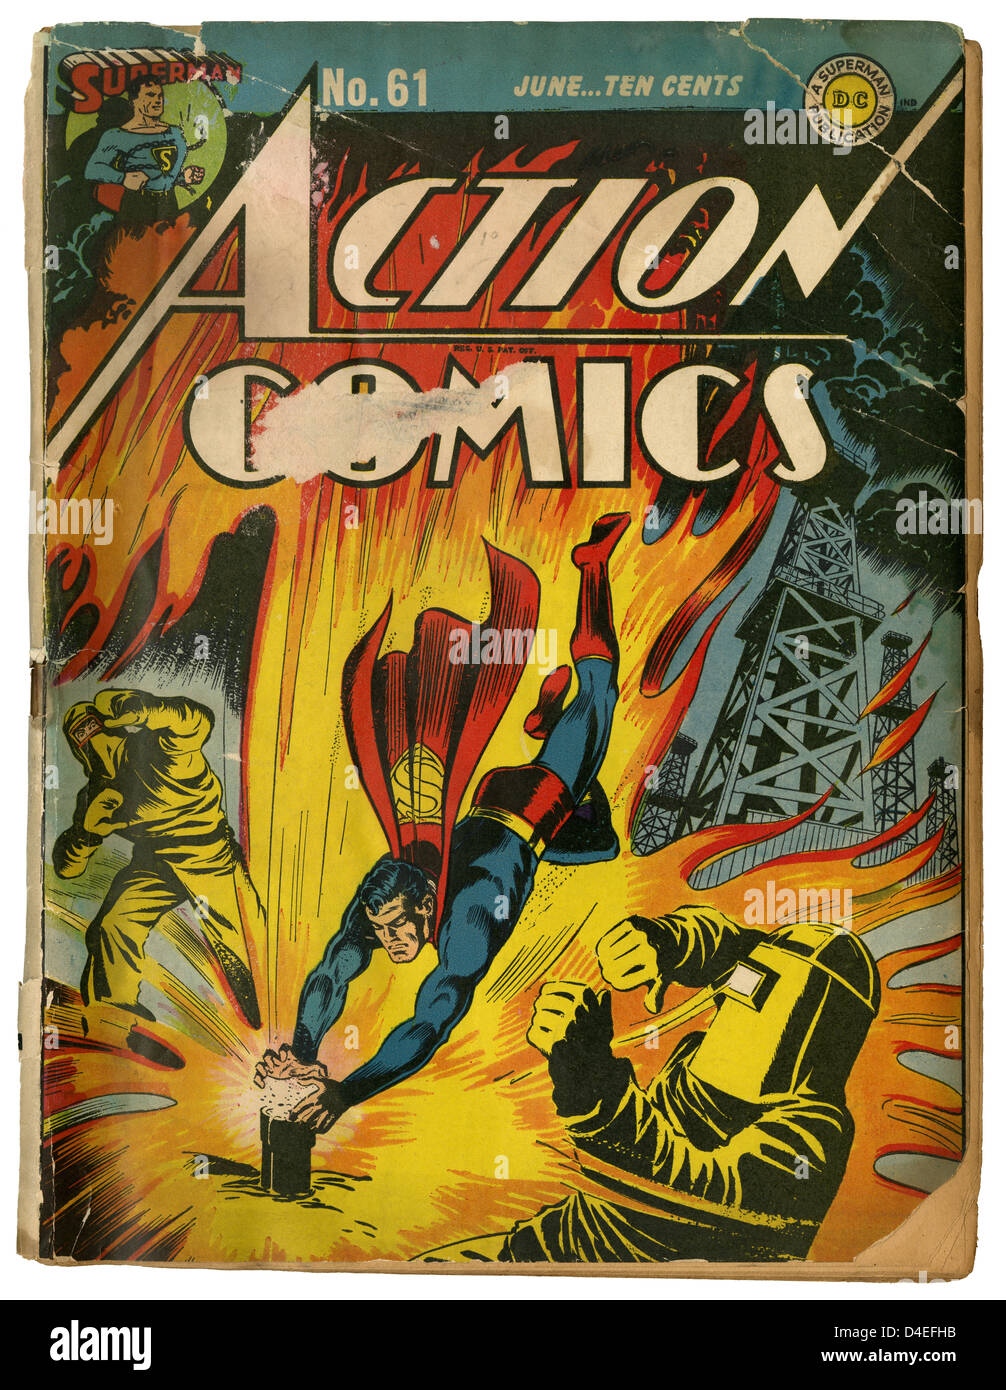 A well-loved copy of Action Comics #61 featuring Superman, from June 1943. Published by DC (Detective Comics). - Stock Image